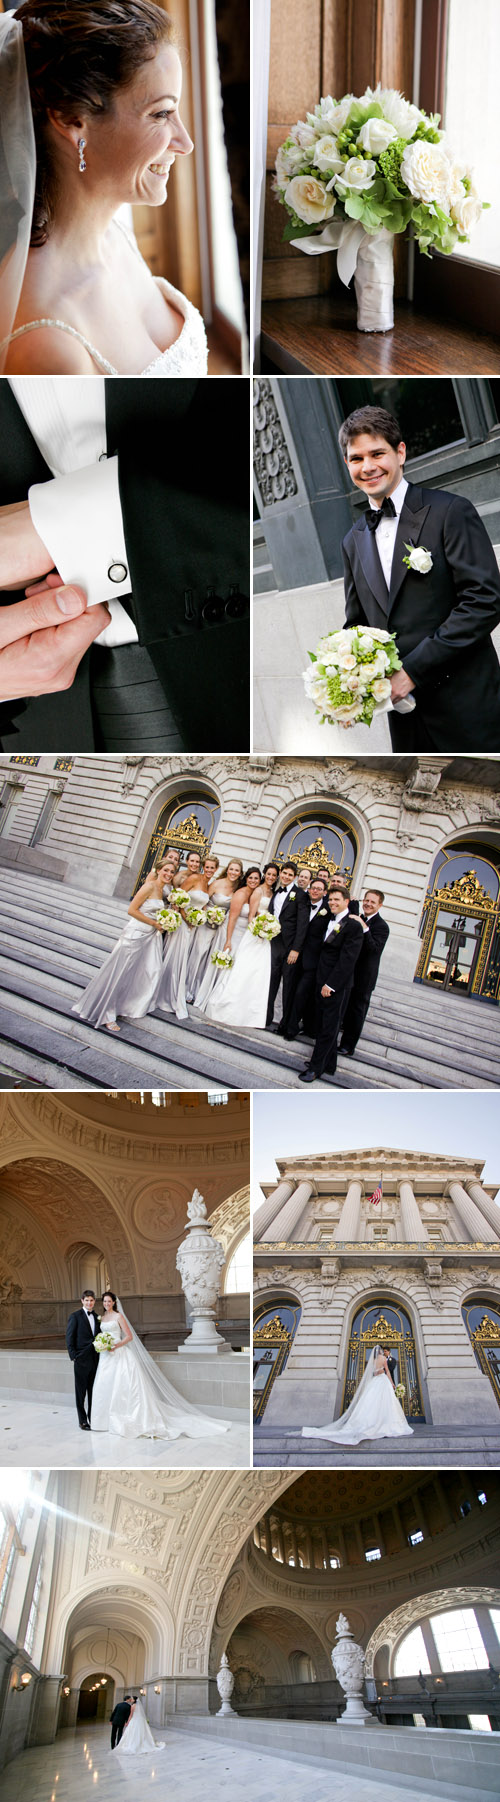 classic and elegant black tie wedding at San Francisco City Hall, ivory, silver, peach and sage green Art Deco wedding decor, photos by Michelle Walker Photography